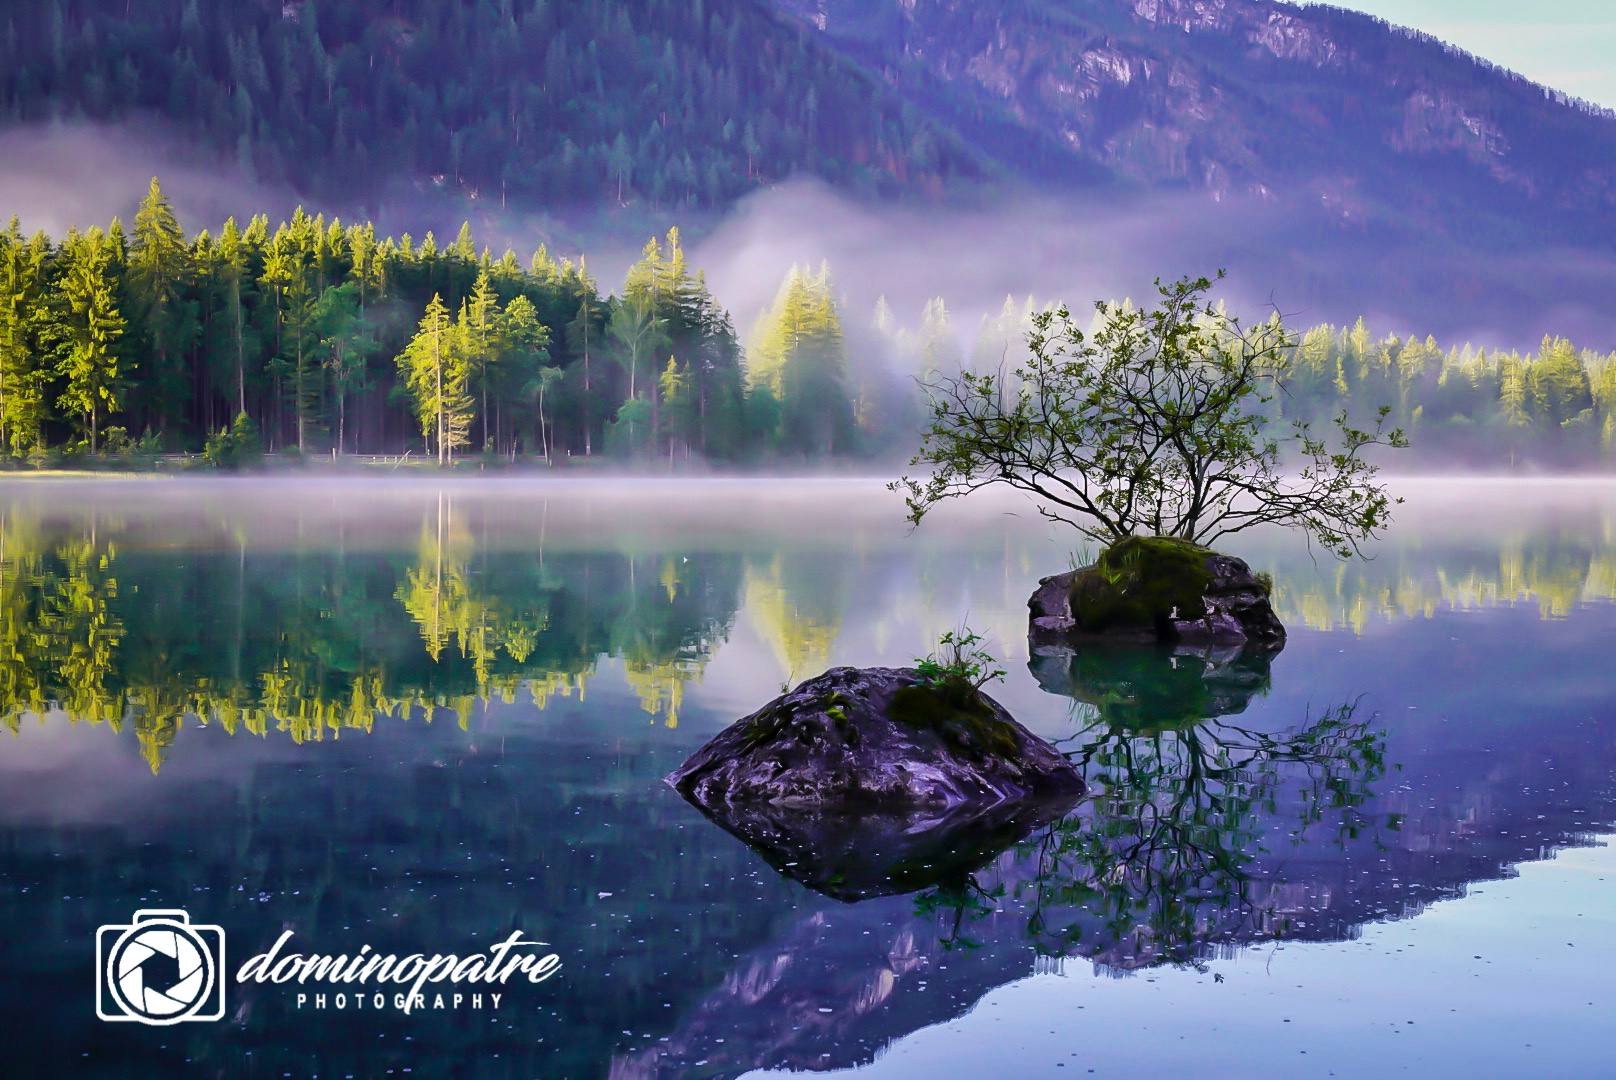 Lake Hintersee, Ramsaul close to Berchtesgaden, Germany